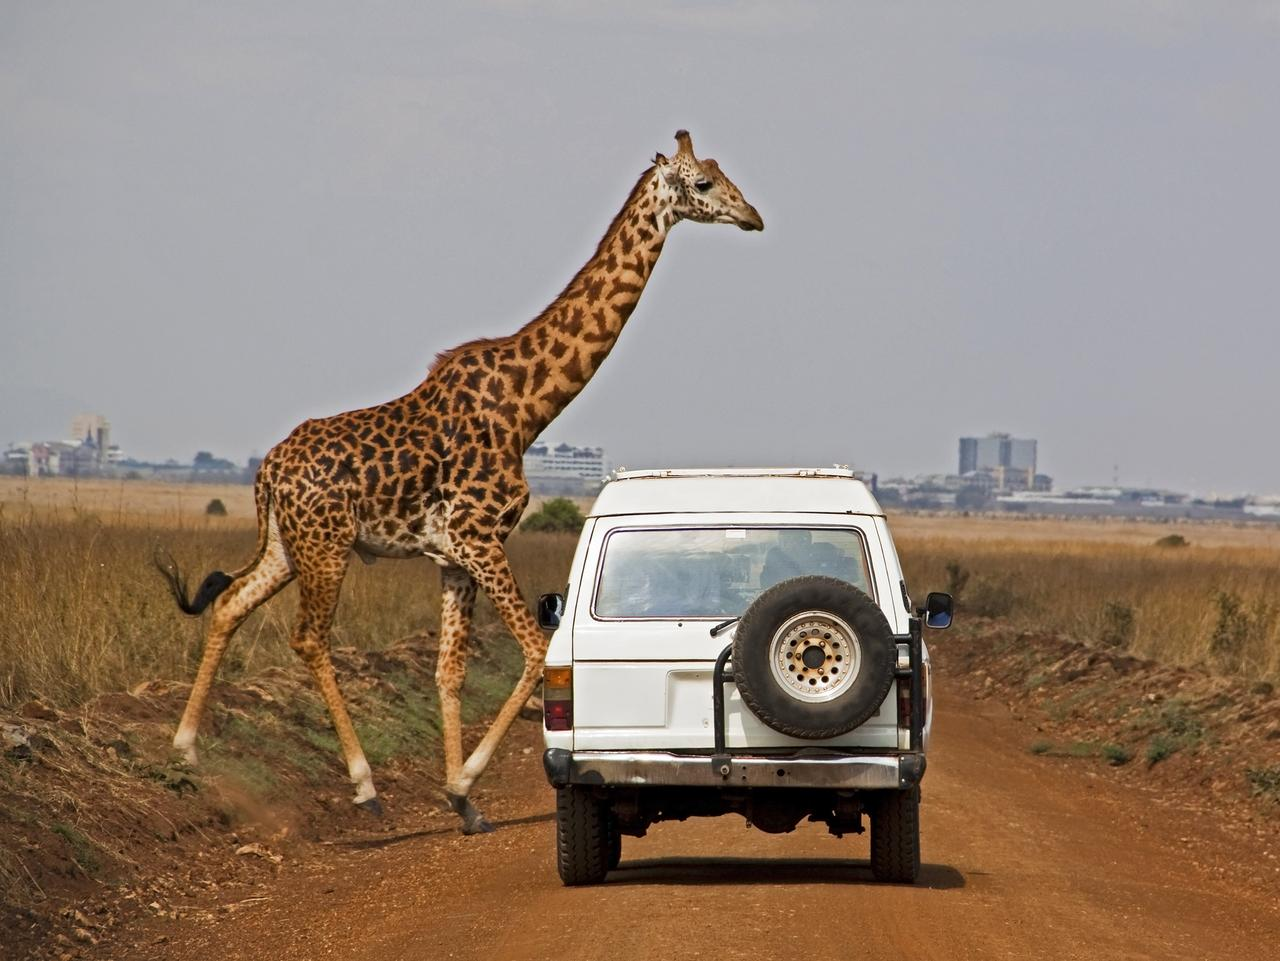 Masai giraffe crosses in front of a vehicle with city backdrop in Nairobi National Park, Kenya. Focus on vehicle. [url=http://www.istockphoto.com/file_search.php?action=file&text=safari&oldtext=&textDisambiguation=&oldTextDisambiguation=&majorterms=%7B%22csv%22%3A%22%22%2C%22conjunction%22%3A%22AND%22%7D&fileTypeSizePrice=%5B%7B%22type%22%3A%22Image%22%2C%22size%22%3A%22All%22%2C%22priceOption%22%3A%221%22%7D%2C%7B%22type%22%3A%22Illustration+%5BVector%5D%22%2C%22size%22%3A%22Vector+Image%22%2C%22priceOption%22%3A%22All%22%7D%2C%7B%22type%22%3A%22Flash%22%2C%22size%22%3A%22Flash+Document%22%2C%22priceOption%22%3A%22All%22%7D%2C%7B%22type%22%3A%22Video%22%2C%22size%22%3A%22All%22%2C%22priceOption%22%3A%221%22%7D%2C%7B%22type%22%3A%22Standard+Audio%22%2C%22size%22%3A%22All%22%2C%22priceOption%22%3A%221%22%7D%2C%7B%22type%22%3A%22Pump+Audio%22%2C%22size%22%3A%22All%22%2C%22priceOption%22%3A%221%22%7D%5D&showPeople=&printAvailable=&exclusiveArtists=&extendedLicense=&collectionPayAsYouGo=1&collectionSubscription=1&taxonomy=&illustrationLimit=Exactly&flashLimit=Exactly&showDeactivatedFiles=0&membername=&userID=4526176&lightboxID=&downloaderID=&approverID=&clearanceBin=0&vettaCollection=0&color=©Space=%7B%22Tolerance%22%3A1%2C%22Matrix%22%3A%5B%5D%7D&orientation=7&minWidth=0&minHeight=0&showTitle=&showContributor=&showFileNumber=1&showDownload=1&enableLoupe=1&order=Downloads&perPage=&tempo=&audioKey=&timeSignature1=&timeSignature2=&bestmatchmix=60&within=1]Other Safari Images[/url]